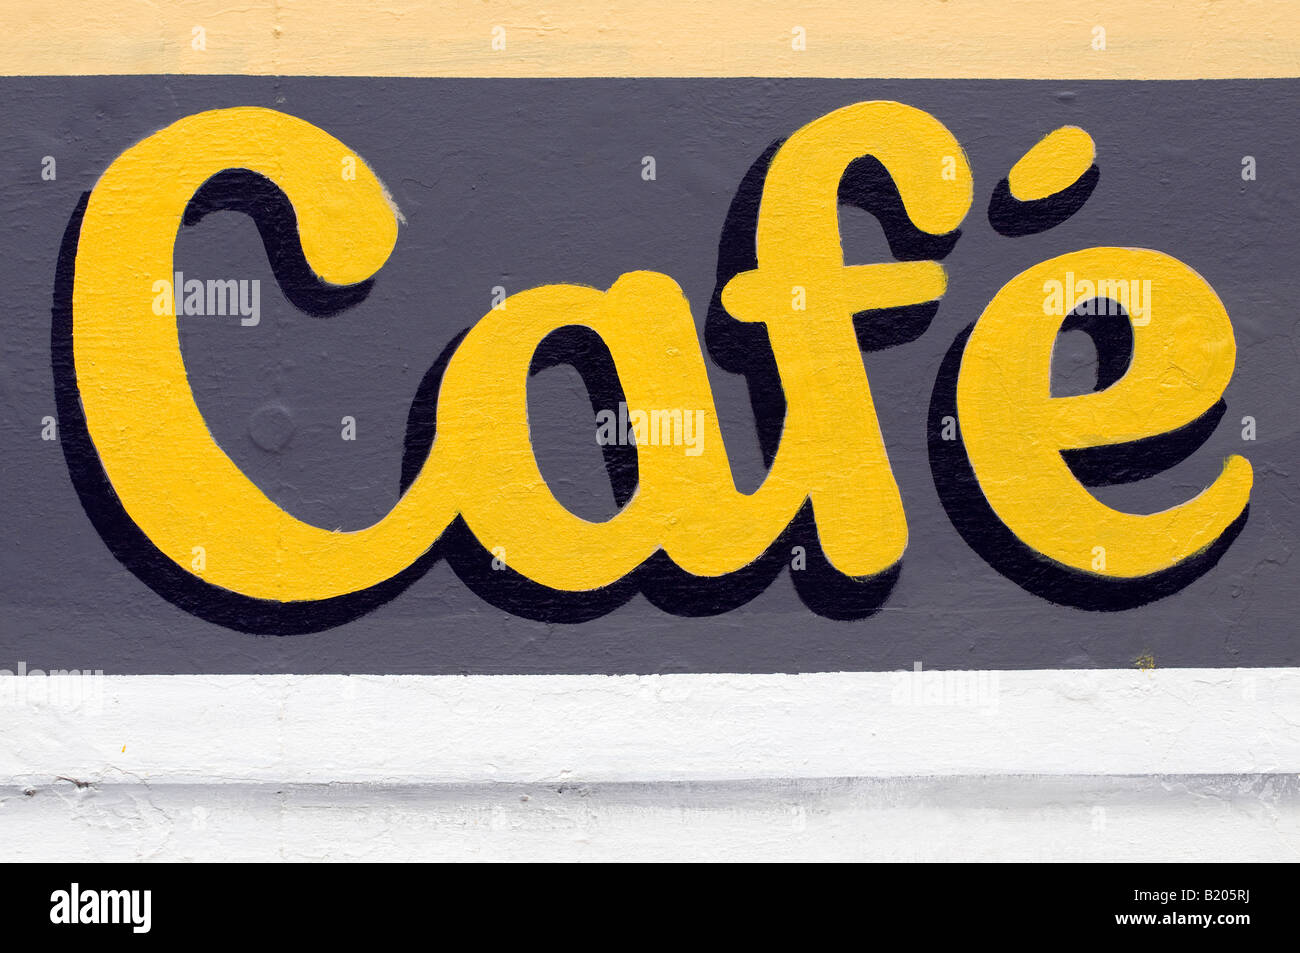 hand painted cafe sign - Stock Image